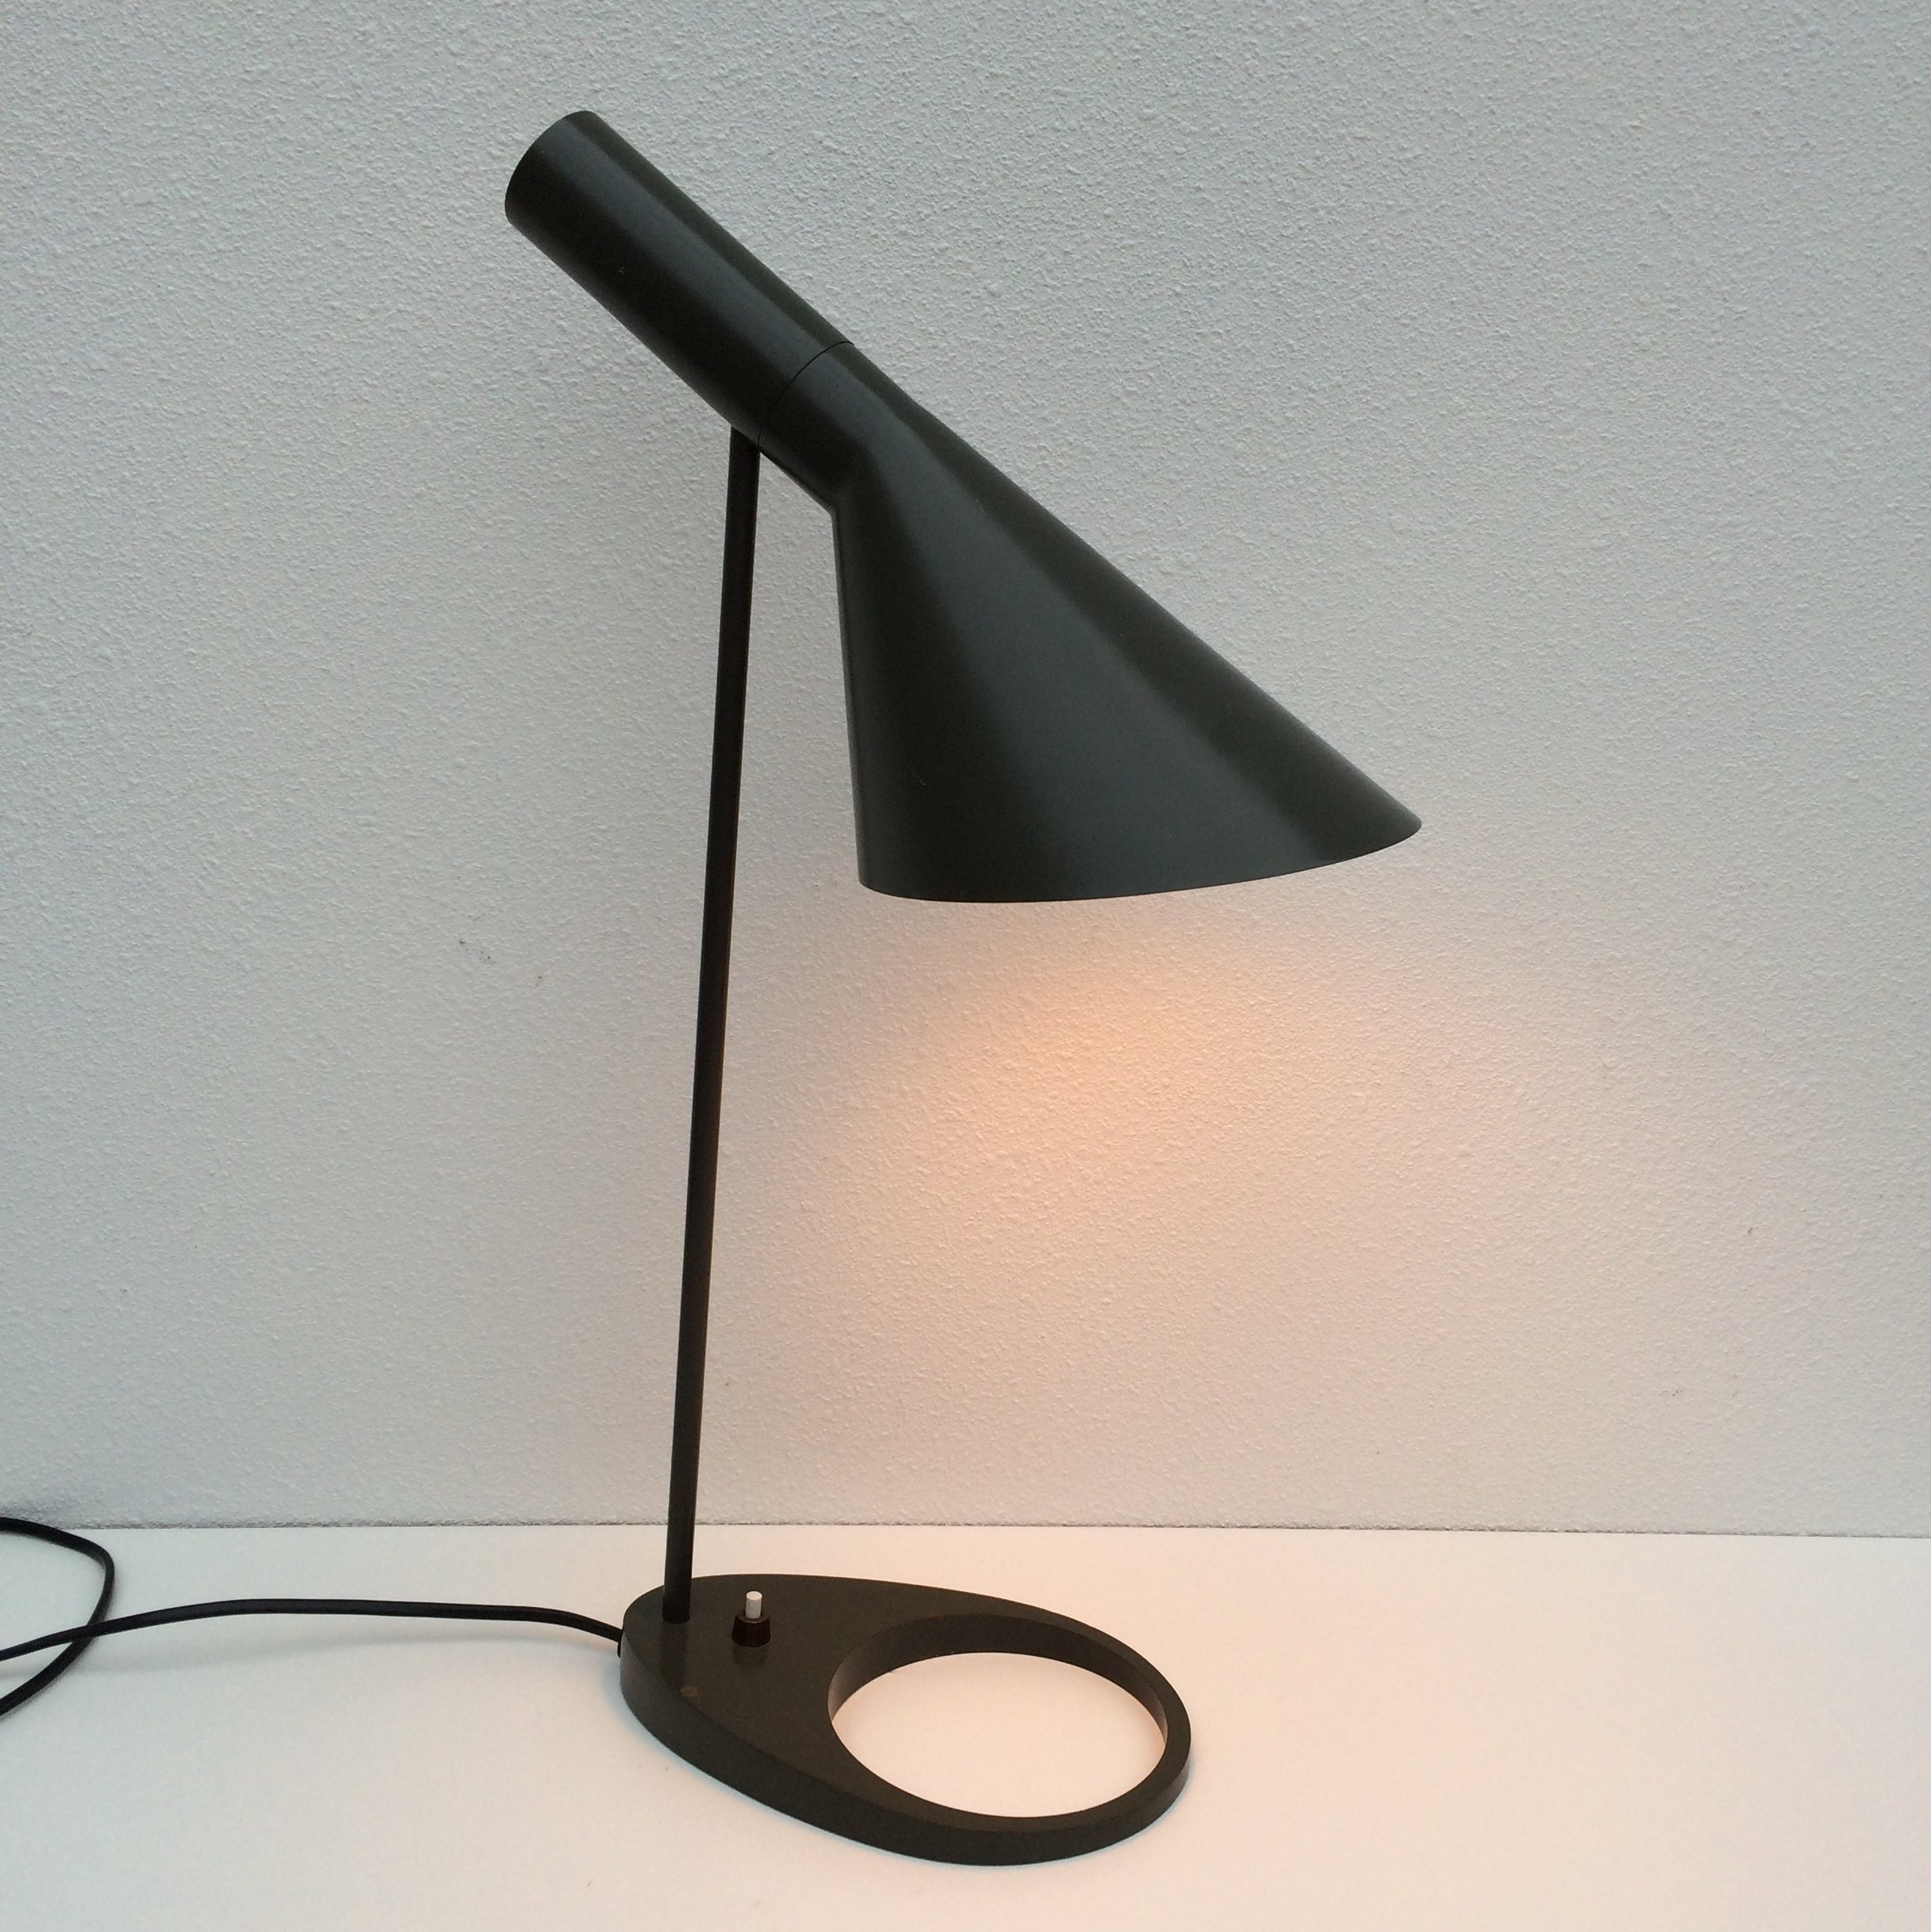 aj visor desk lamp by arne jacobsen for louis poulsen 1950s 59405. Black Bedroom Furniture Sets. Home Design Ideas